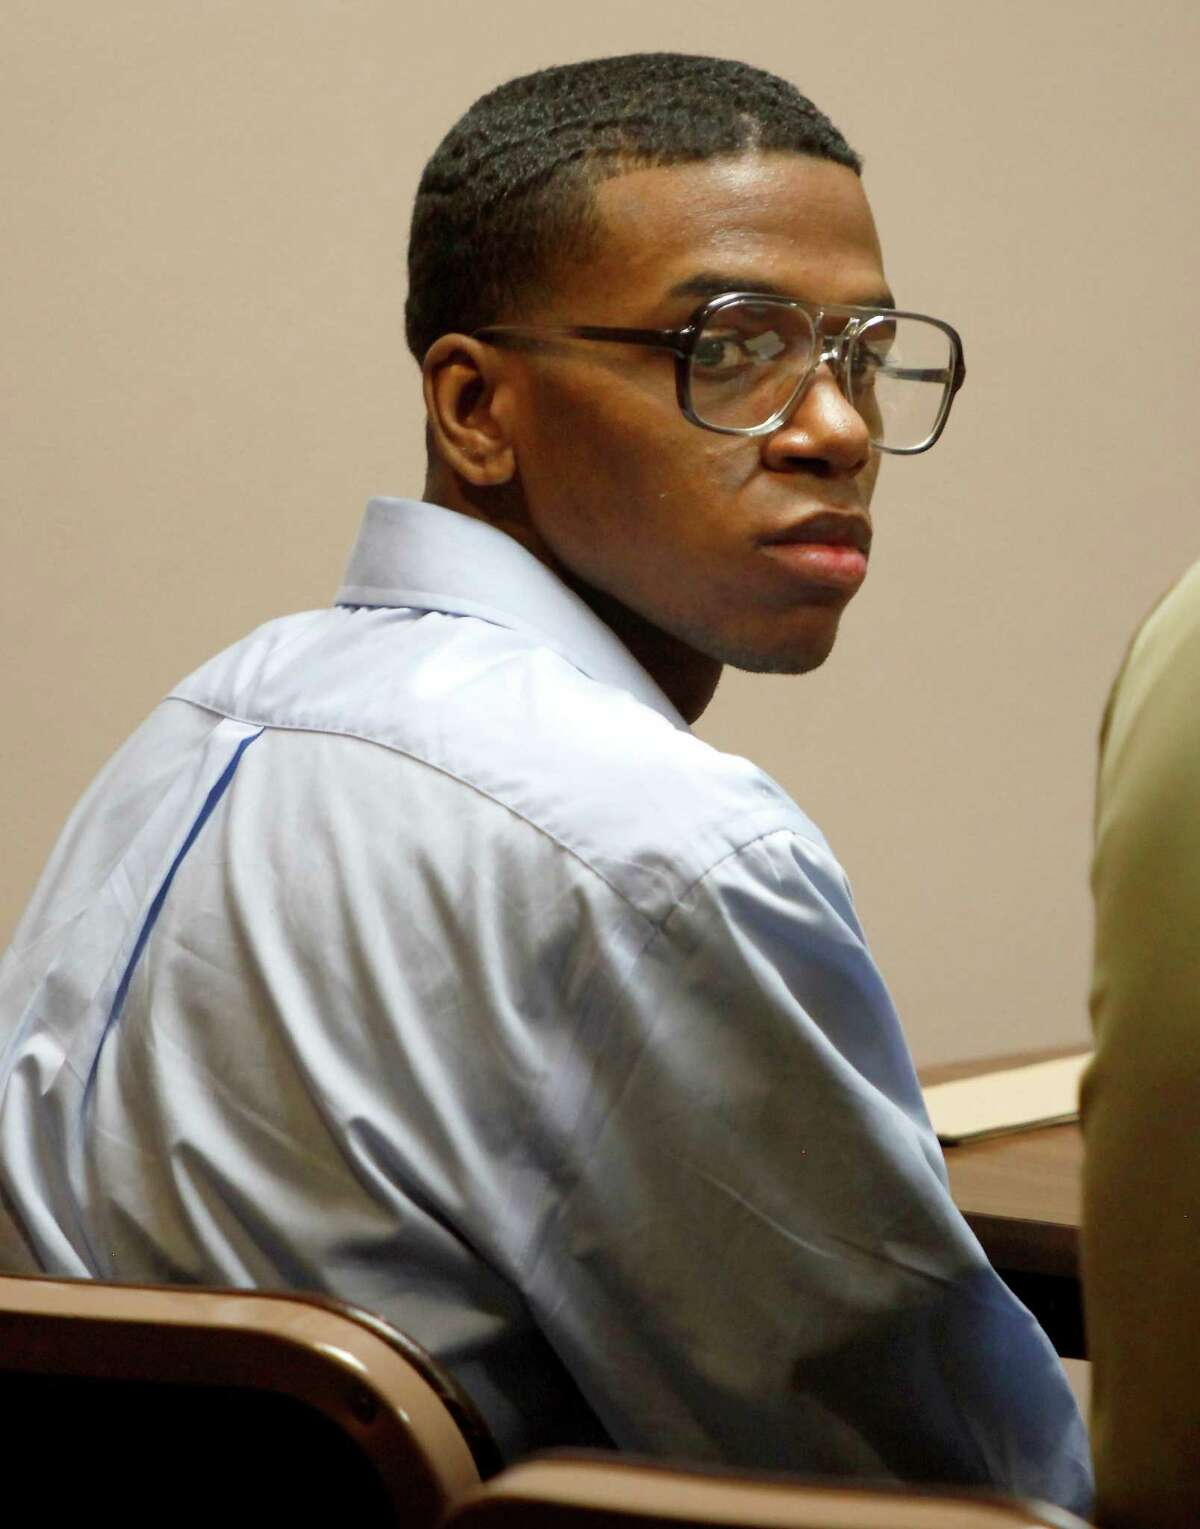 Lorenzo Leroy Thompson looks around the courtroom. He had admitted attempting to steal the victim's purse, which ultimately led to her death.